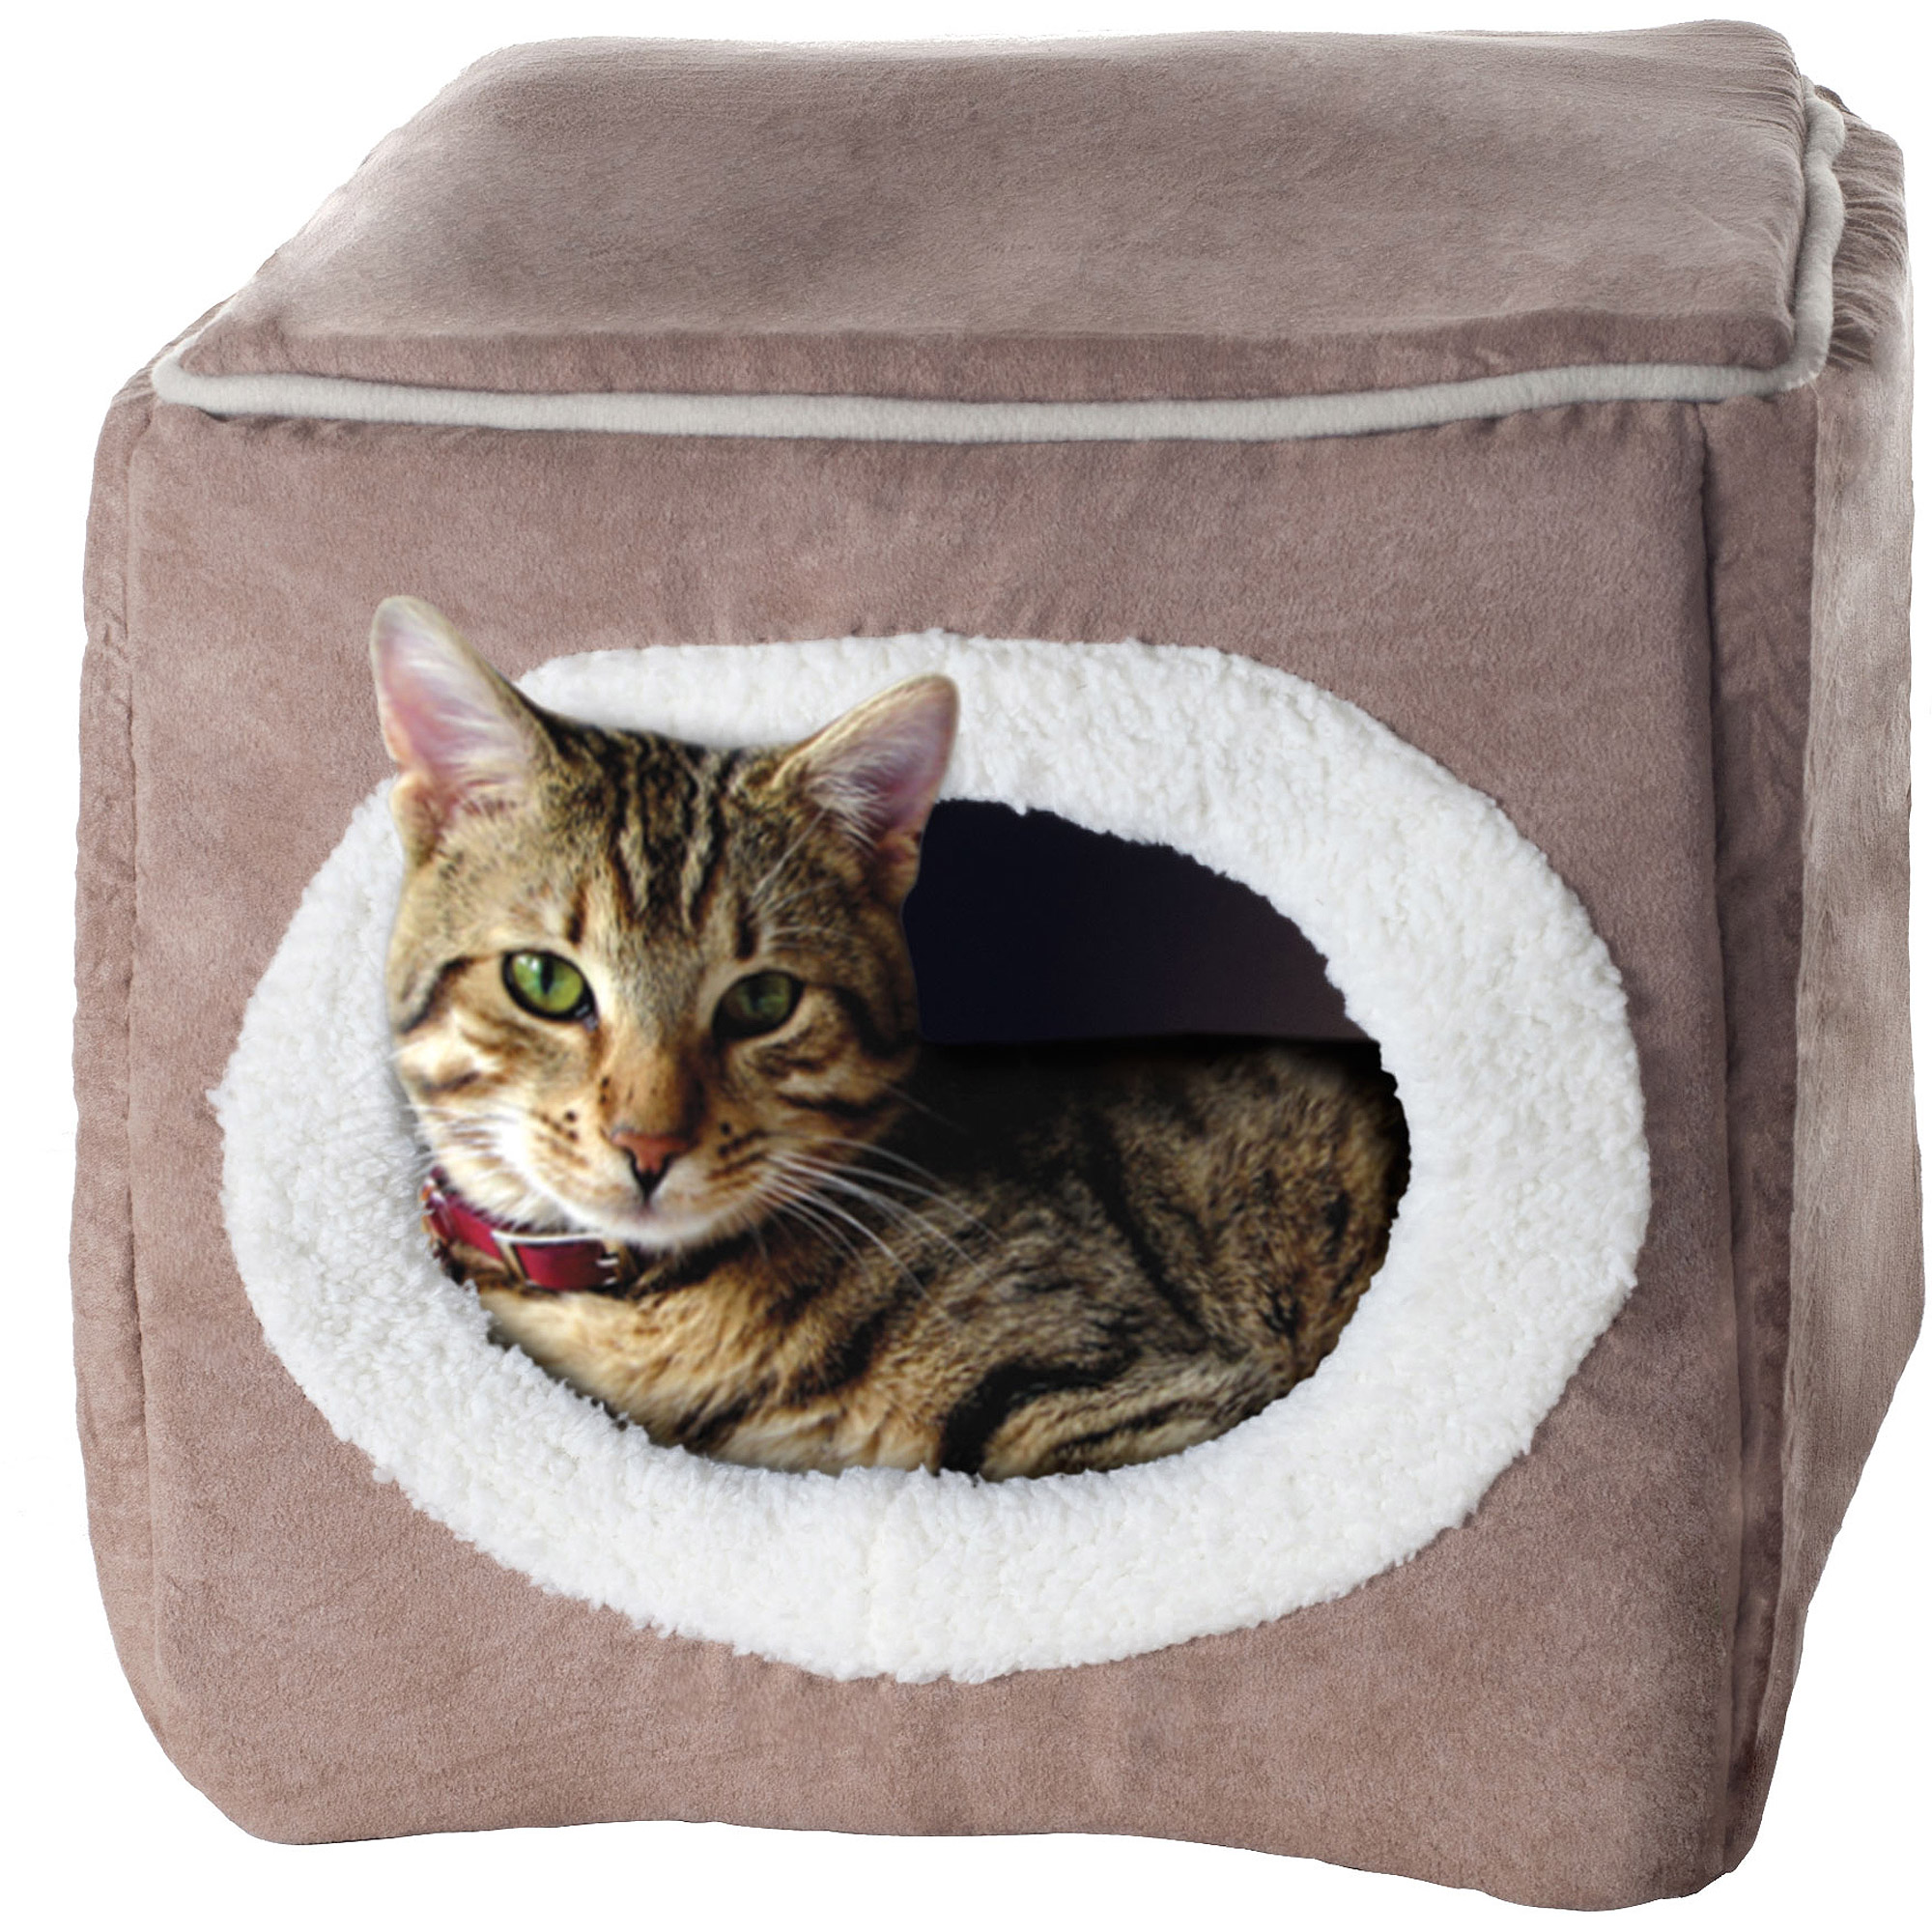 PETMAKER Cozy Cave Enclosed Cube Pet Bed - Light Coffee